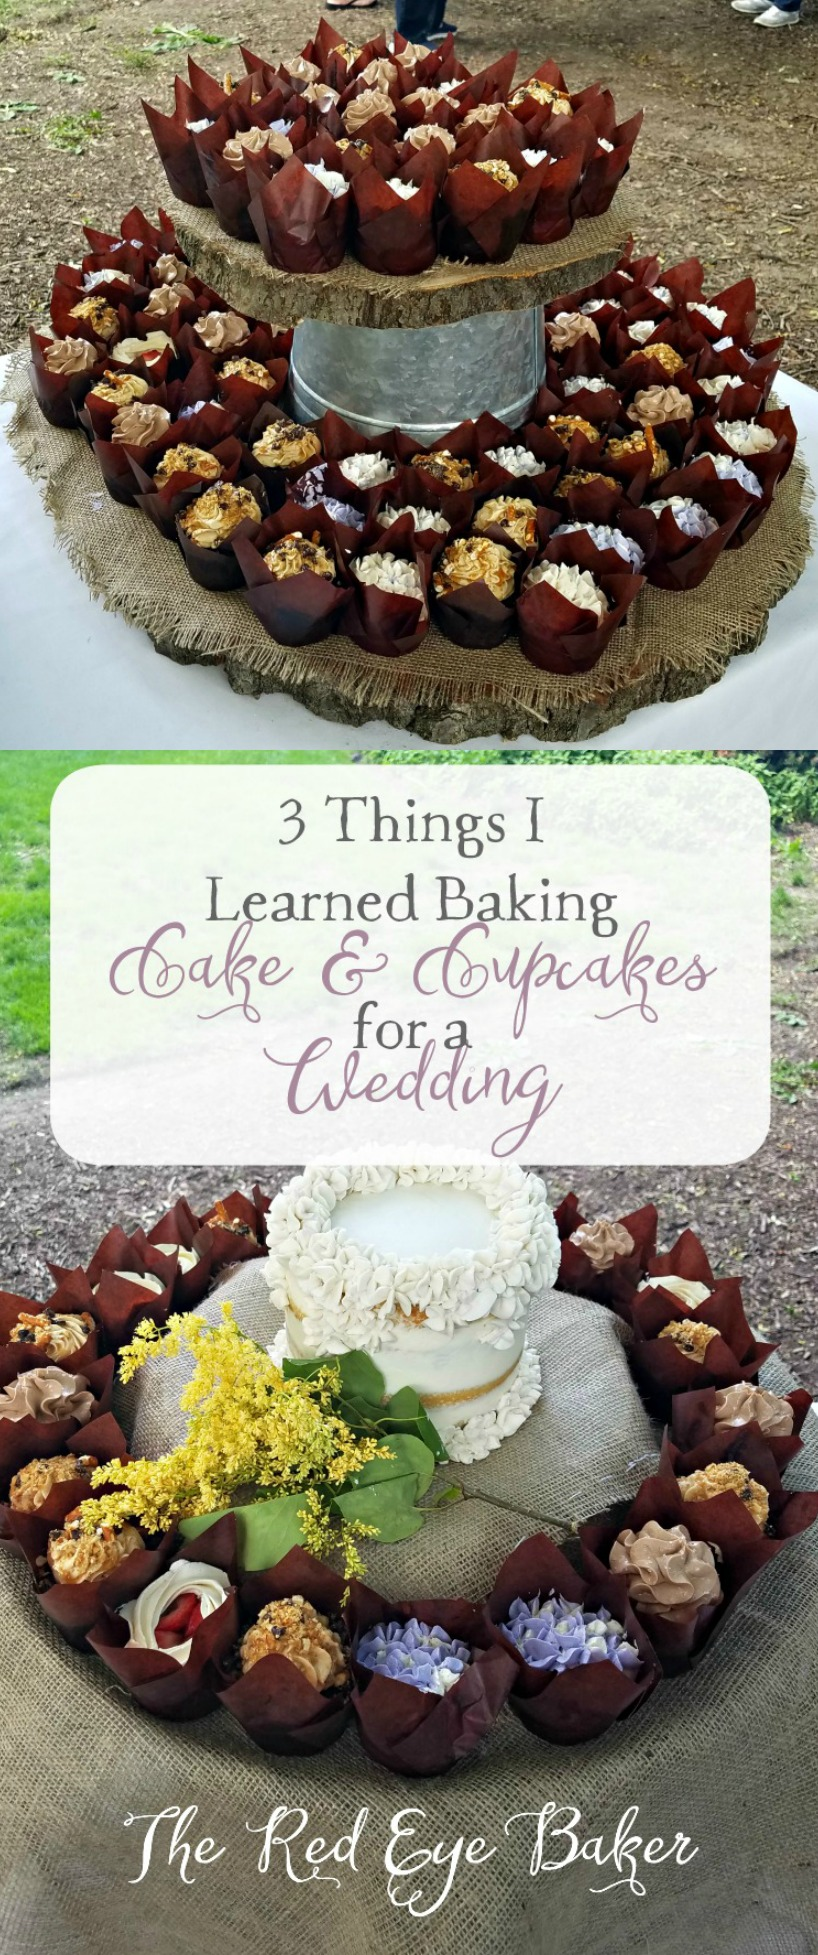 3 Things I Learned Baking Cake & Cupcakes for a Wedding | It was my largest baking adventure so far! Read all about my tips for pulling off such a feat.